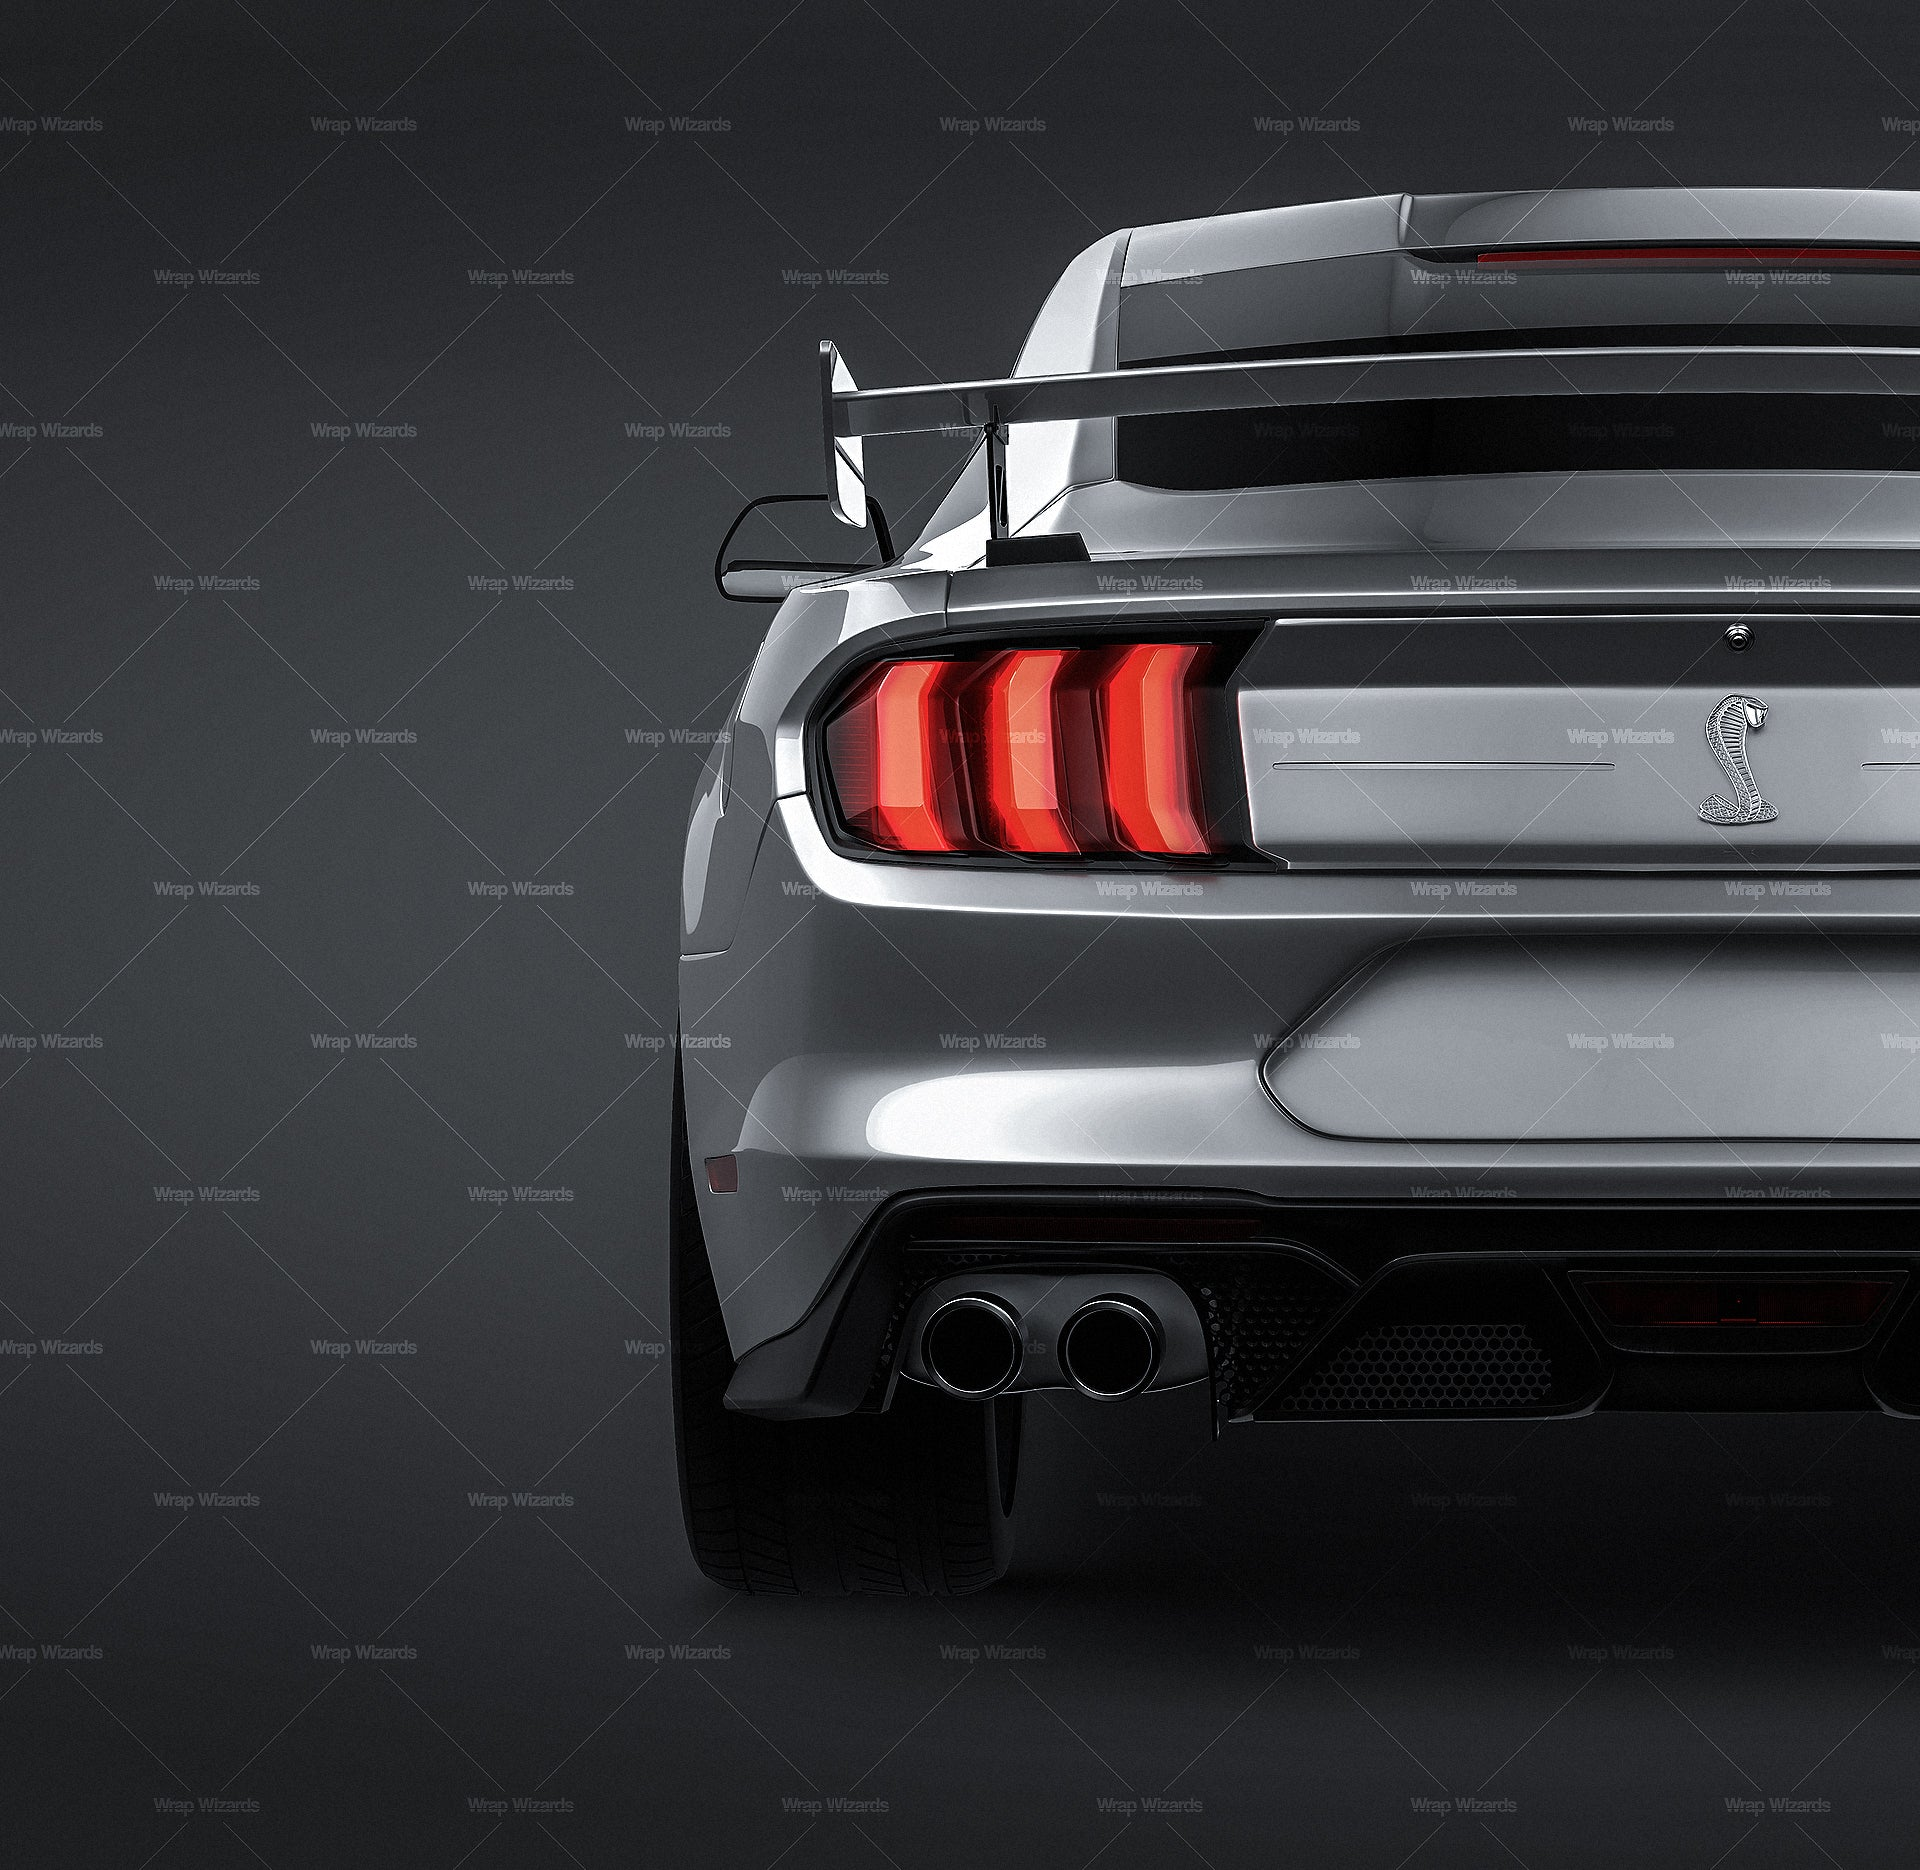 Ford Mustang Shelby GT500 2020 - all sides Car Mockup Template.psd